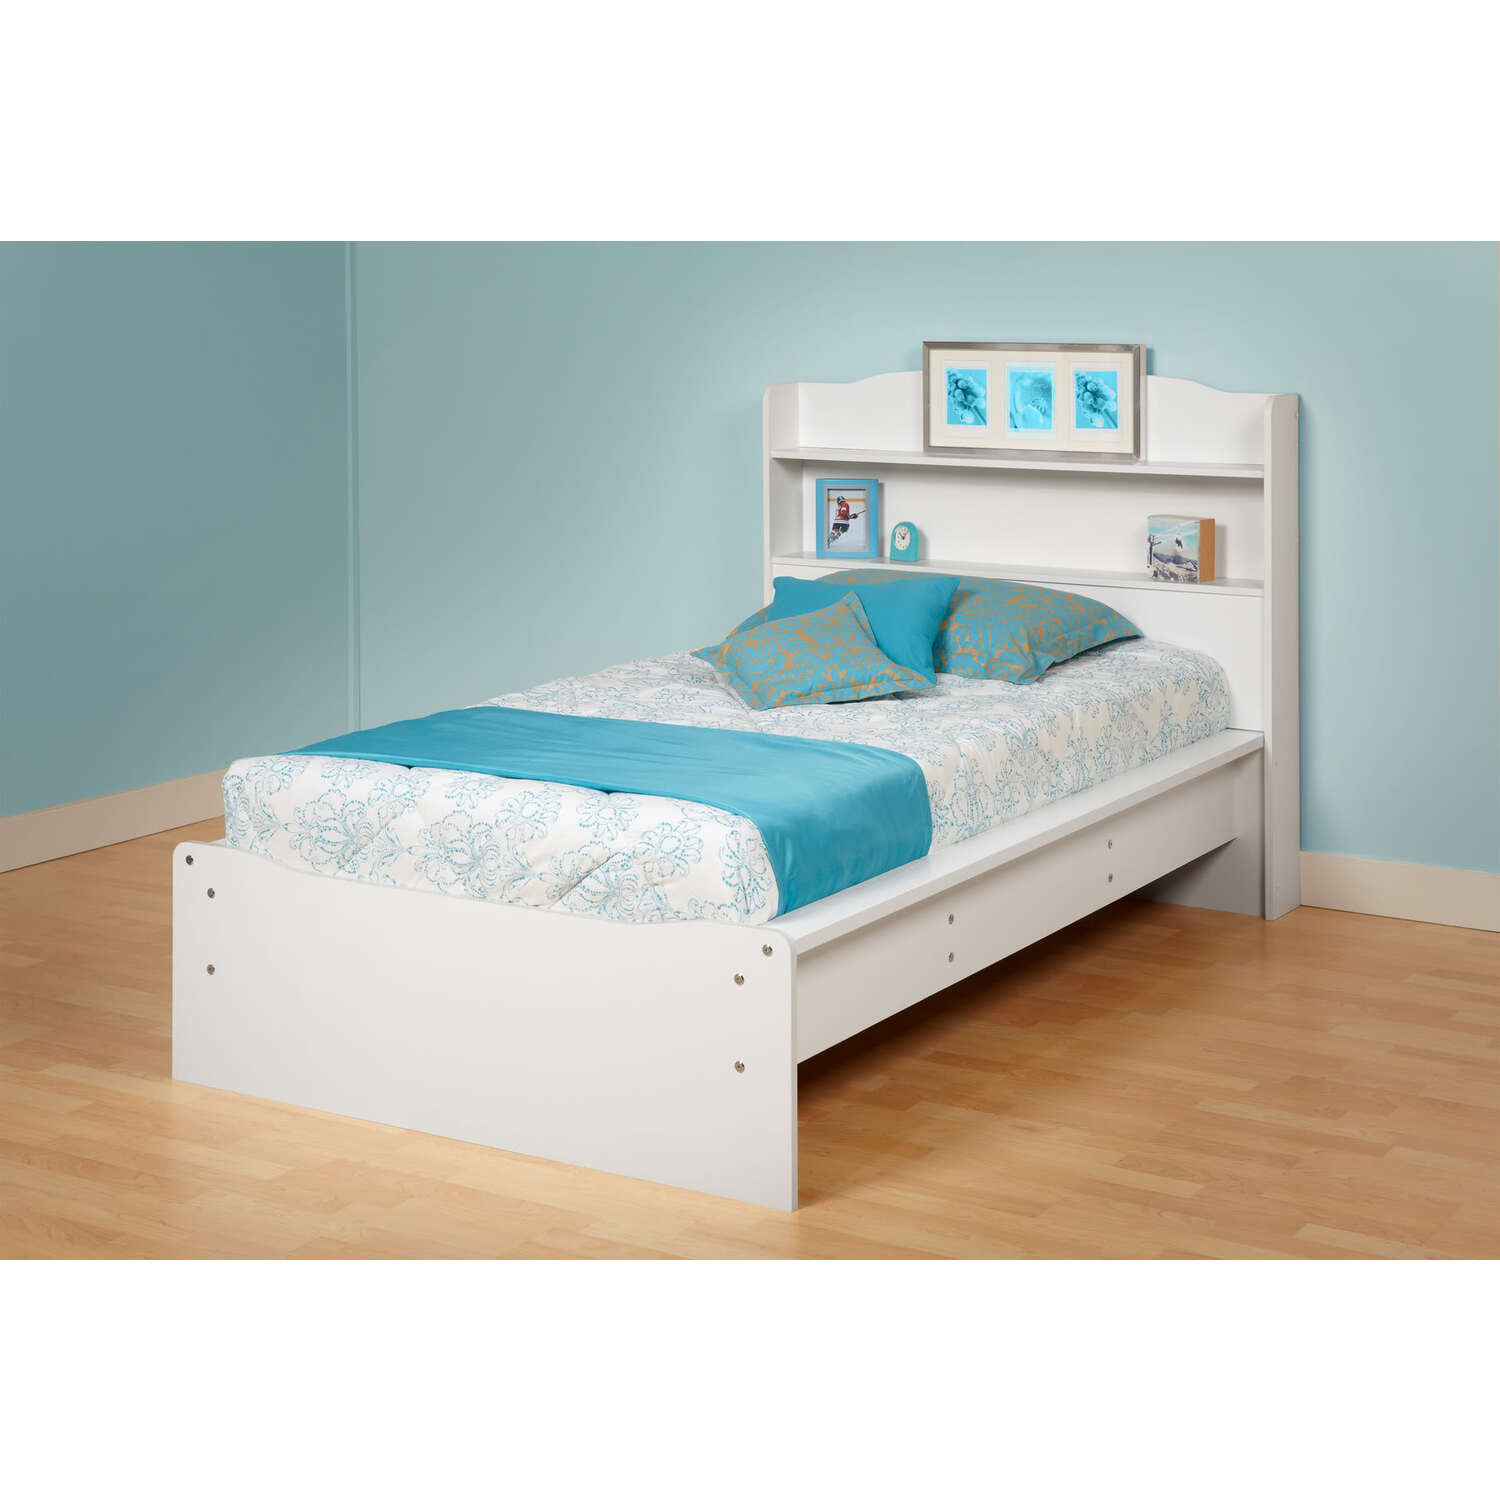 Prepac aspen twin platform bed bookcase headboard by oj for Bookshelf bed headboard